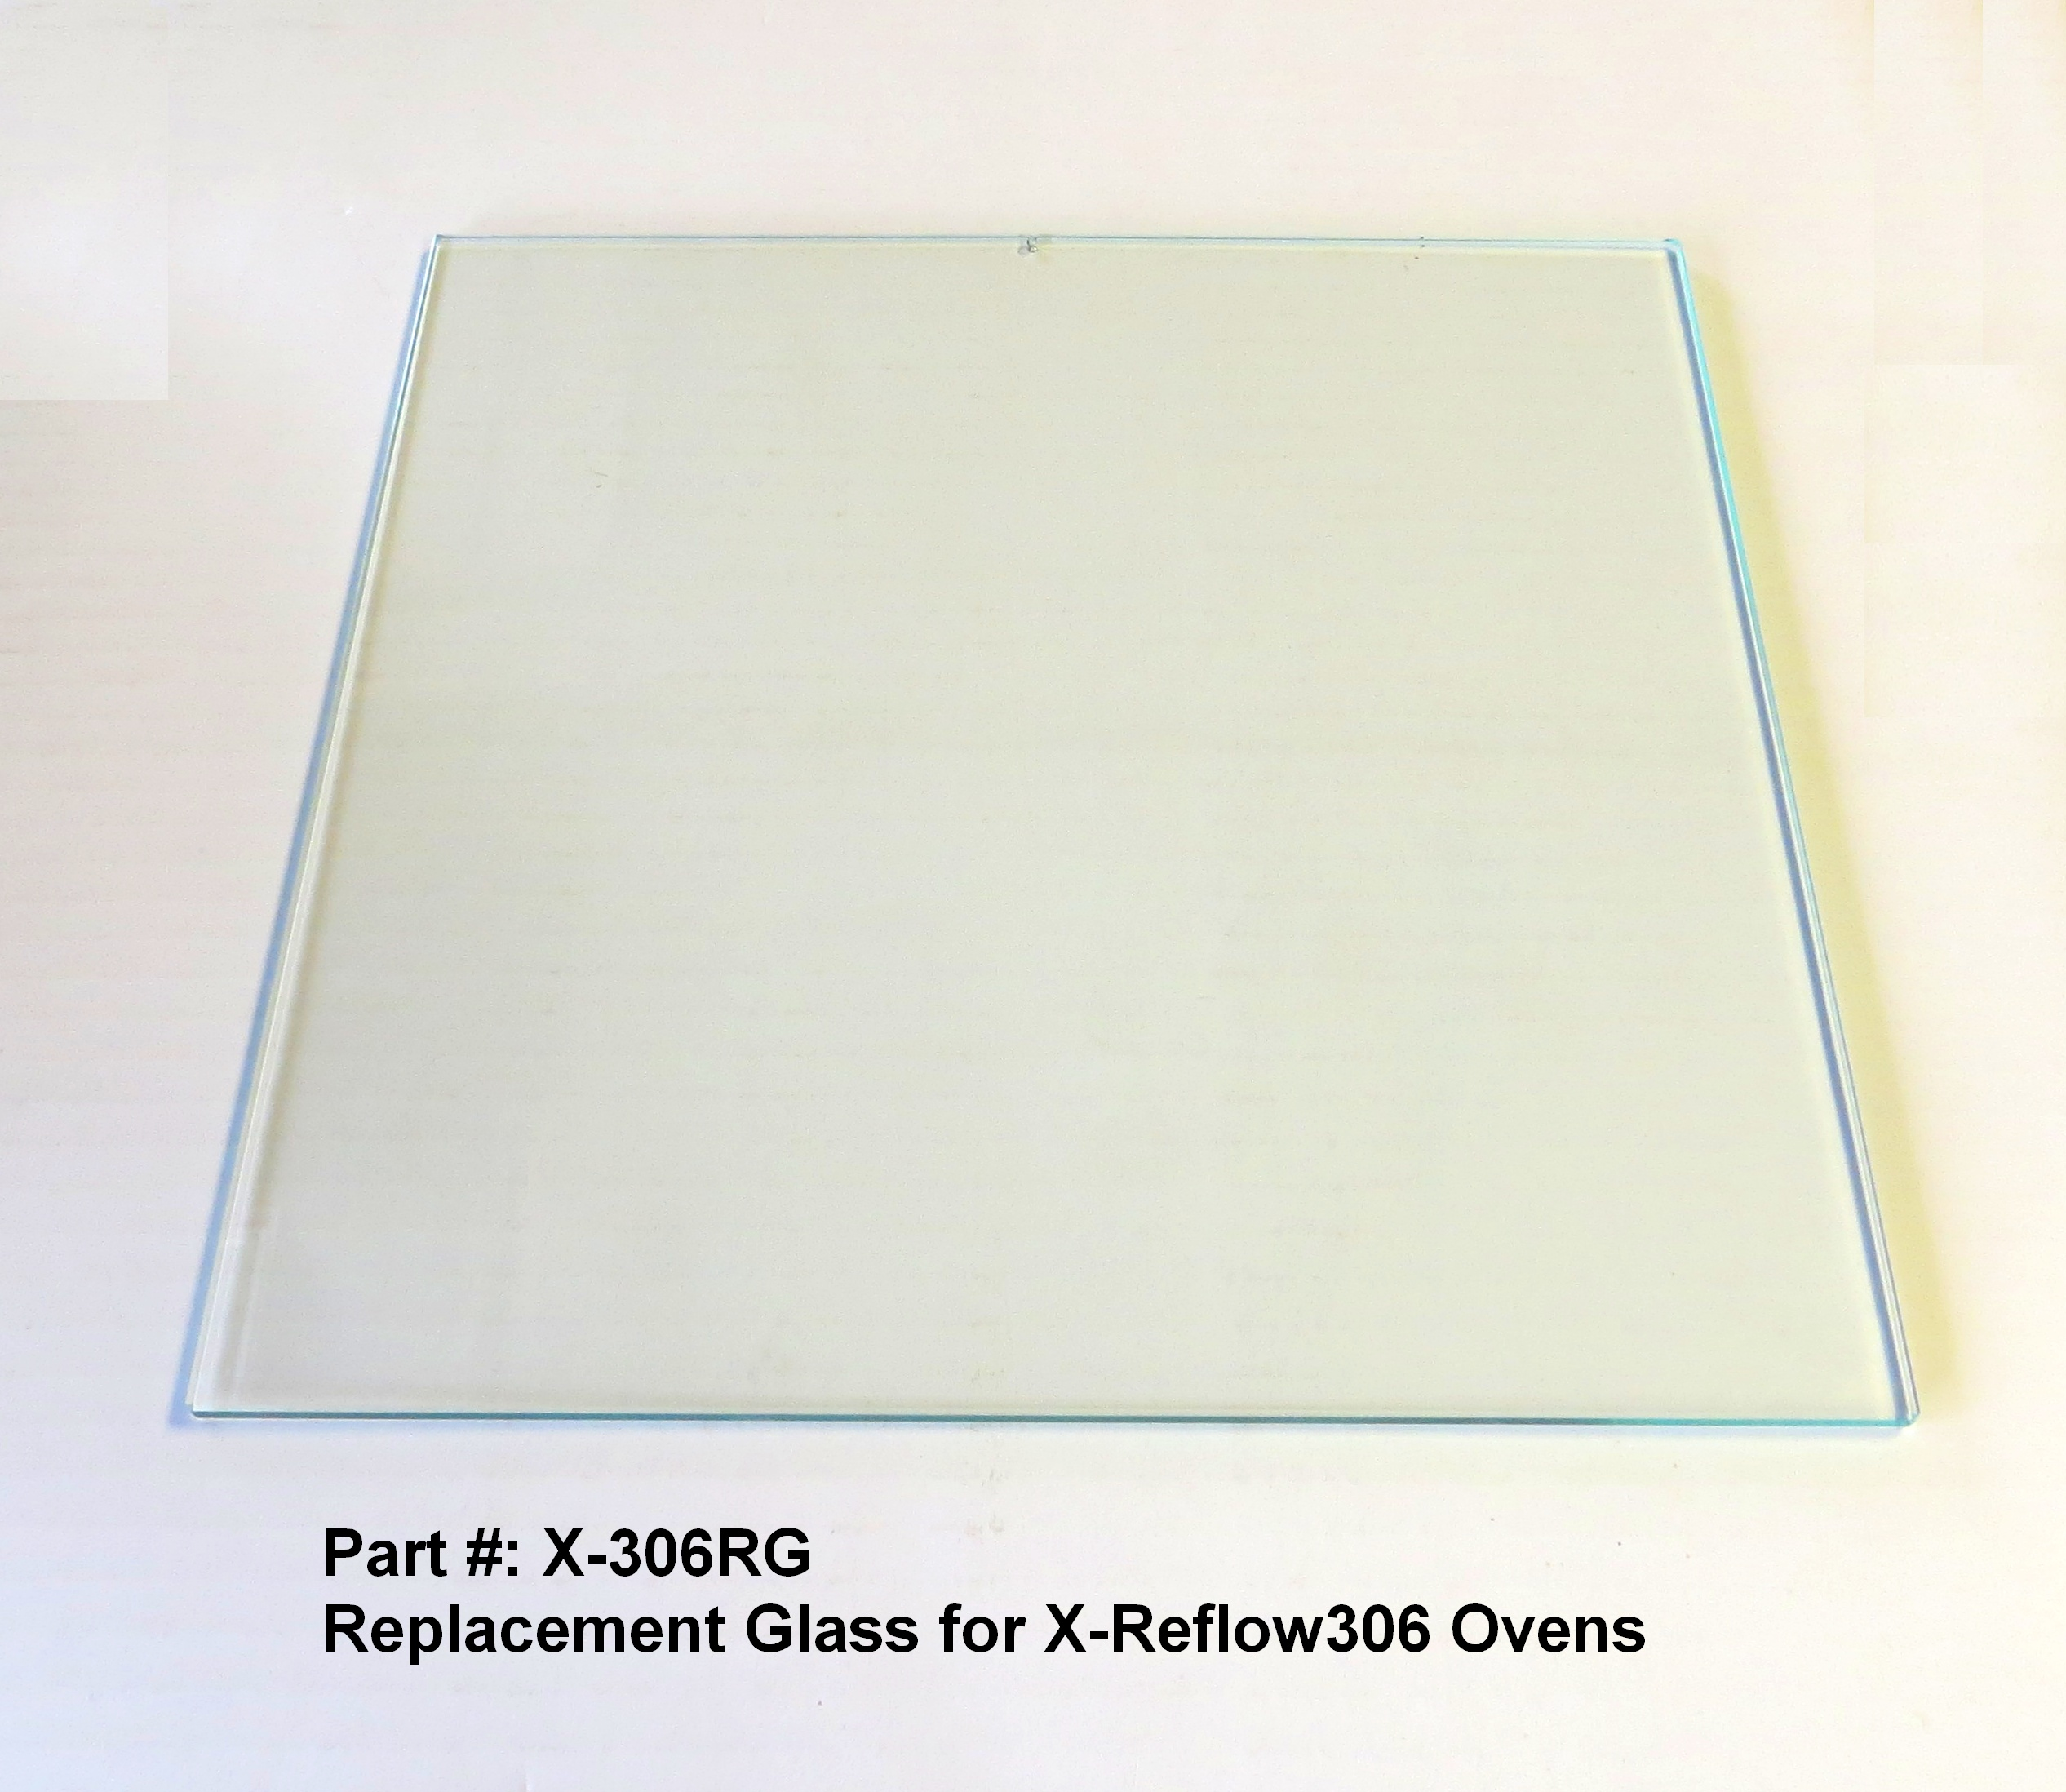 Replacement  Glass  for X-Reflow306 Ovens Top Clam-Shell window